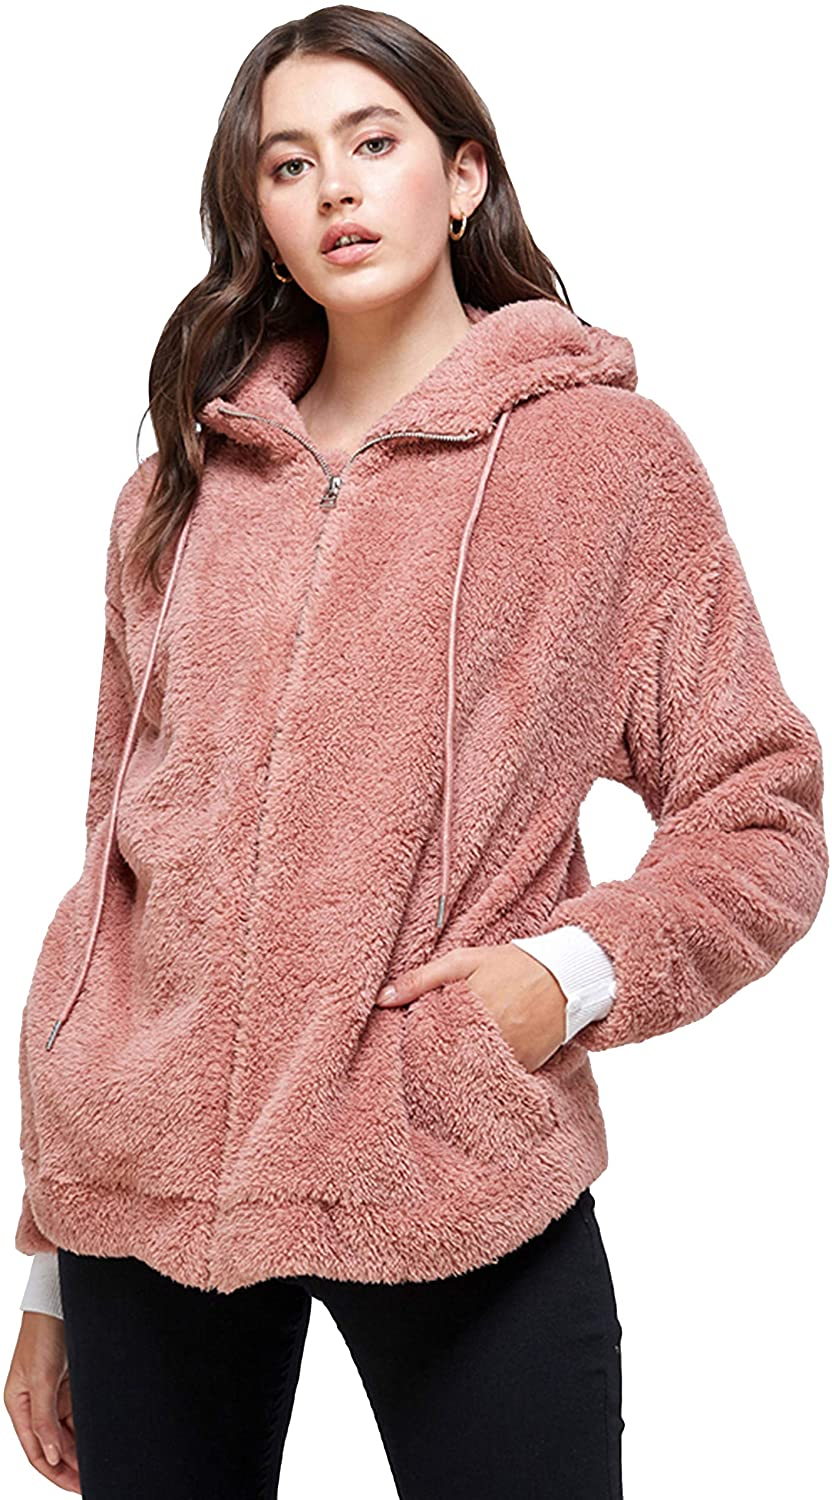 MINT PLUS PINK Women's Fashion Faux Fuzzy Fleece and Hoodie Long Sleeve Zip up Jacket Sherpa with Pocket